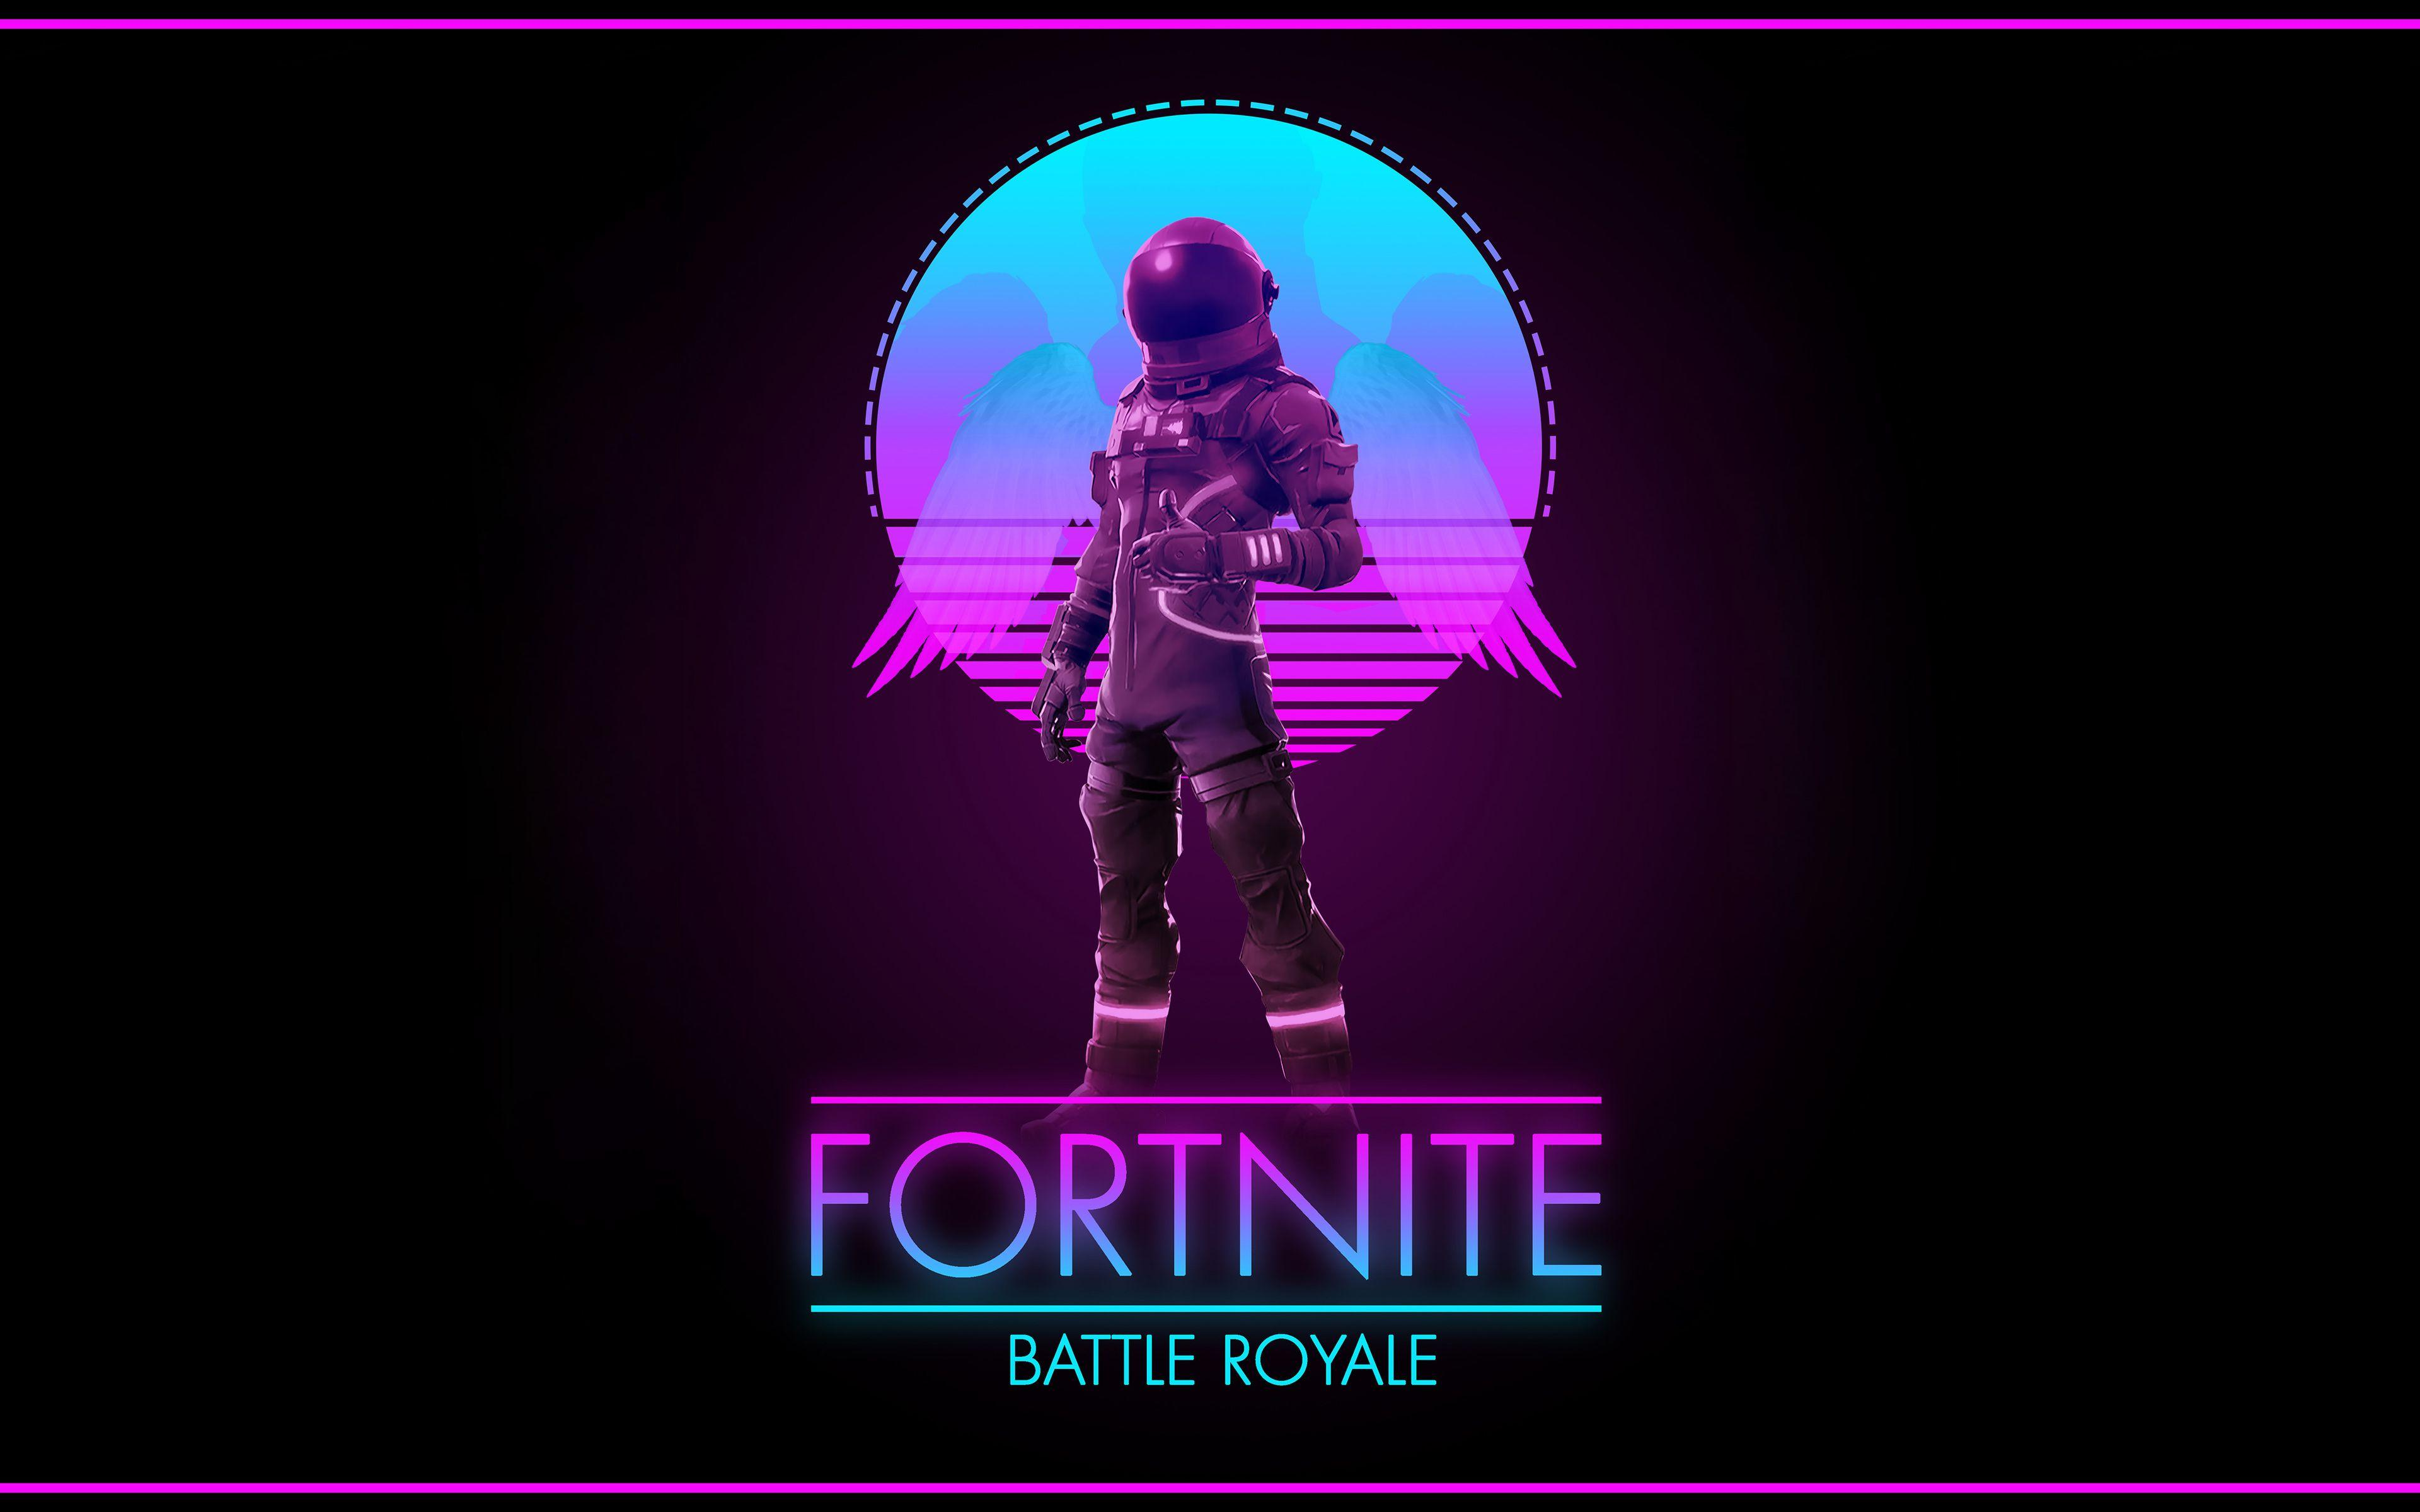 Download wallpapers Fortnite Battle Royale, 4k, 2018 games, artwork